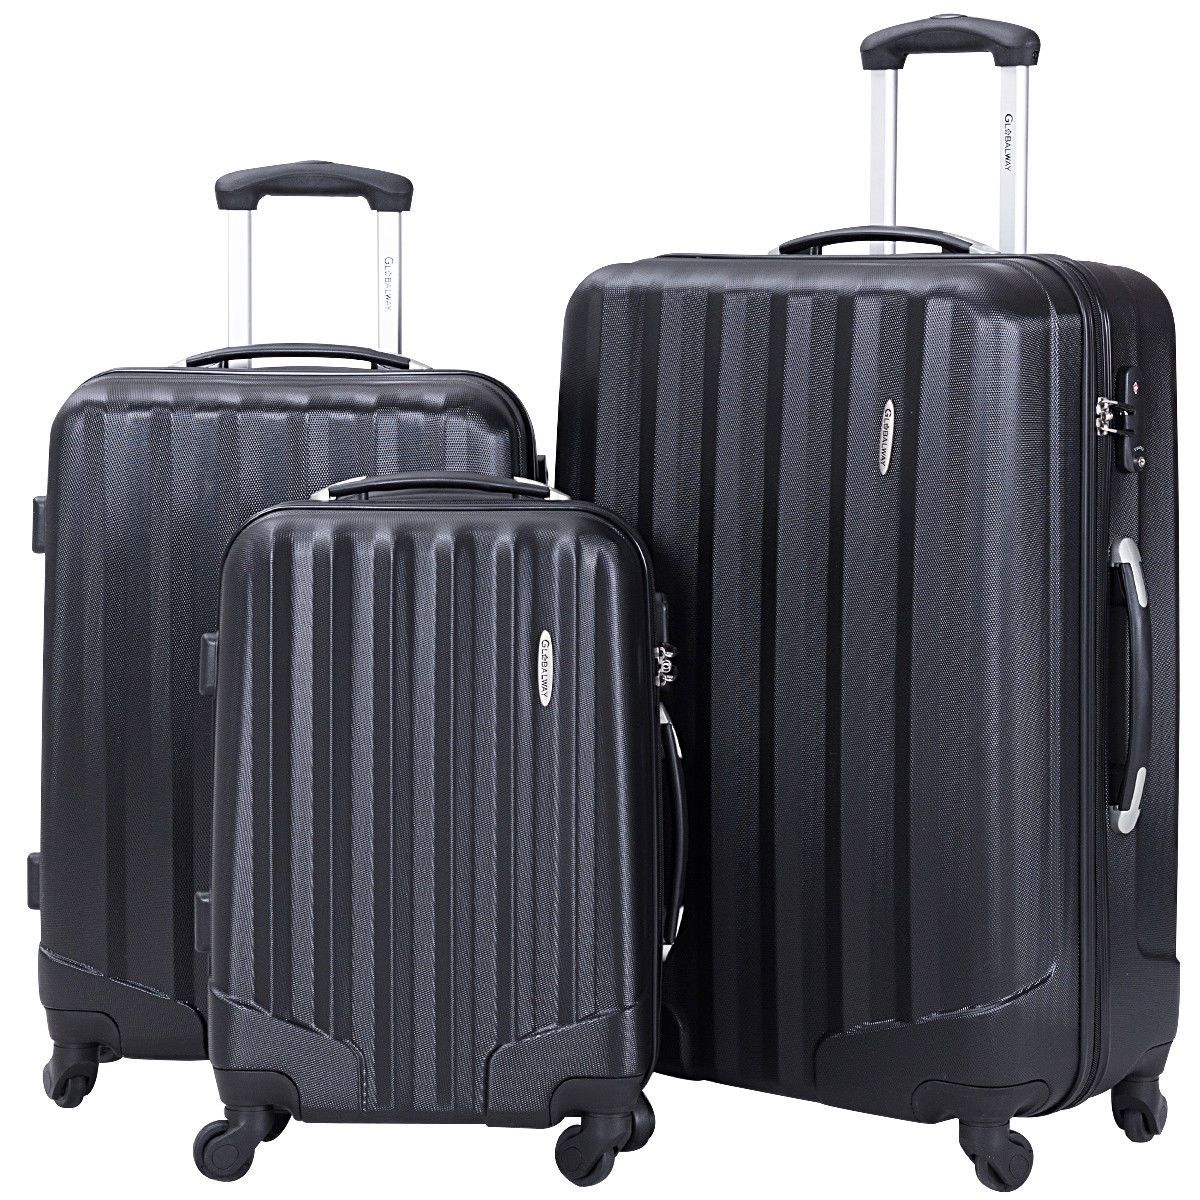 GLOBALWAY 3 Pcs Luggage Travel Set Bag ABS Trolley Suitcase w TSA Lock Black 02261d61d7fb0